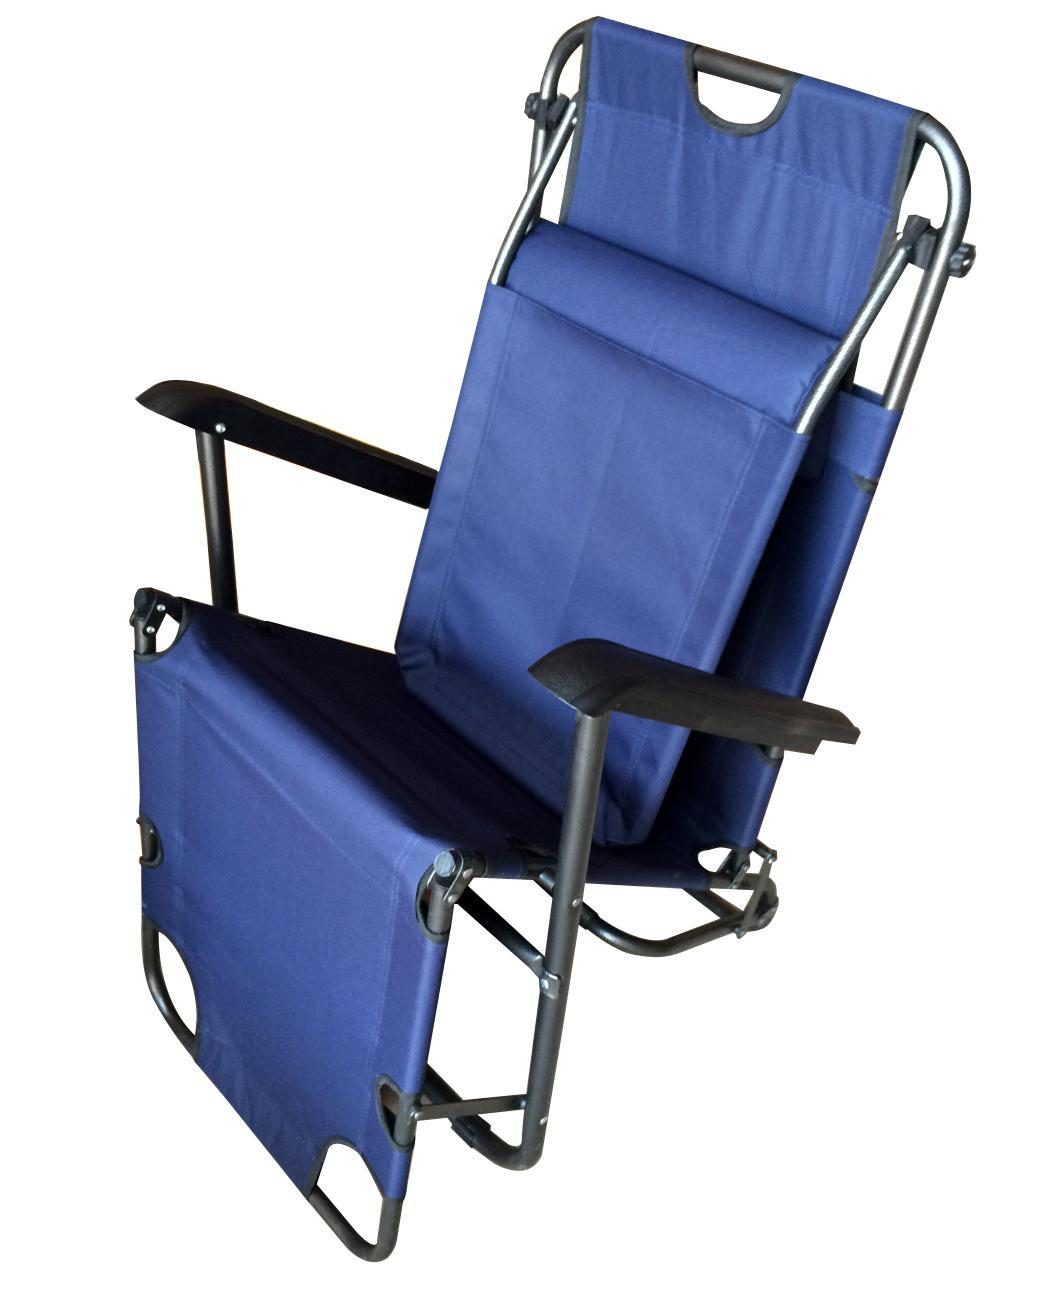 Portable chair zero gravity recliner outdoor folding pool beach chaise lounge ebay - Outdoor mobel lounge ...